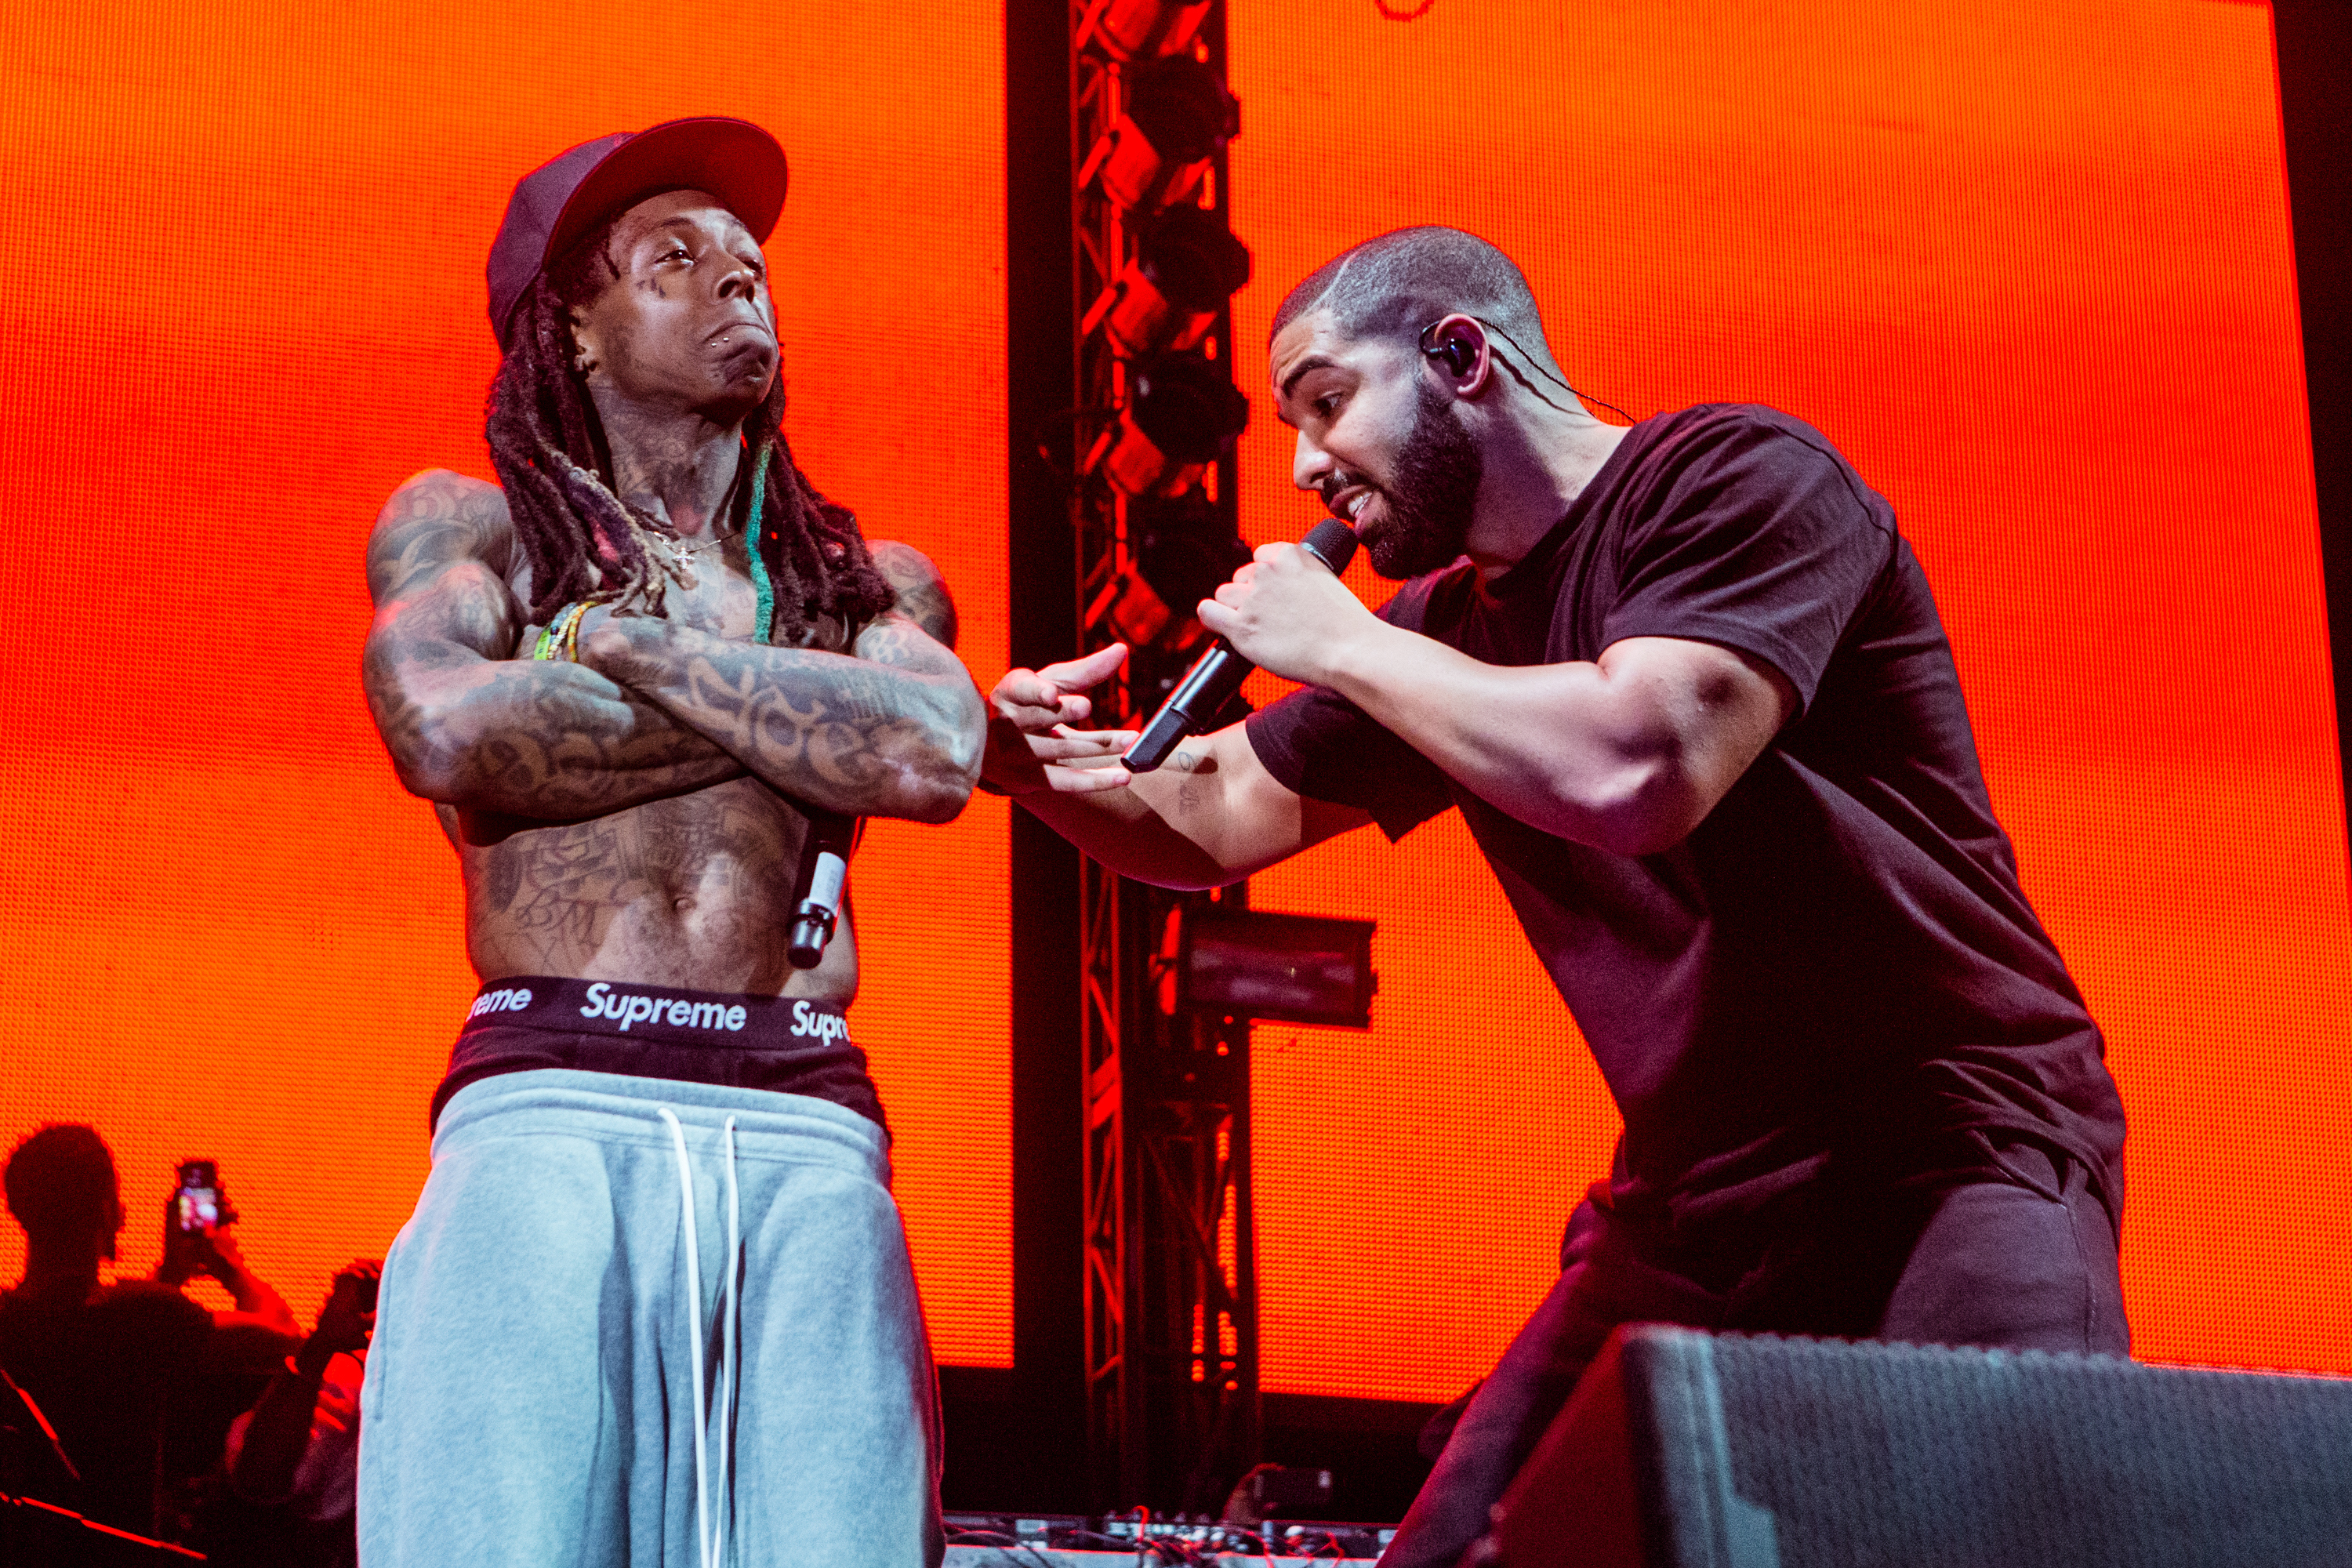 Lil Wayne and Drake perform at Lil Weezyana Festival at Champions Square on Aug. 28, 2015 in New Orleans.